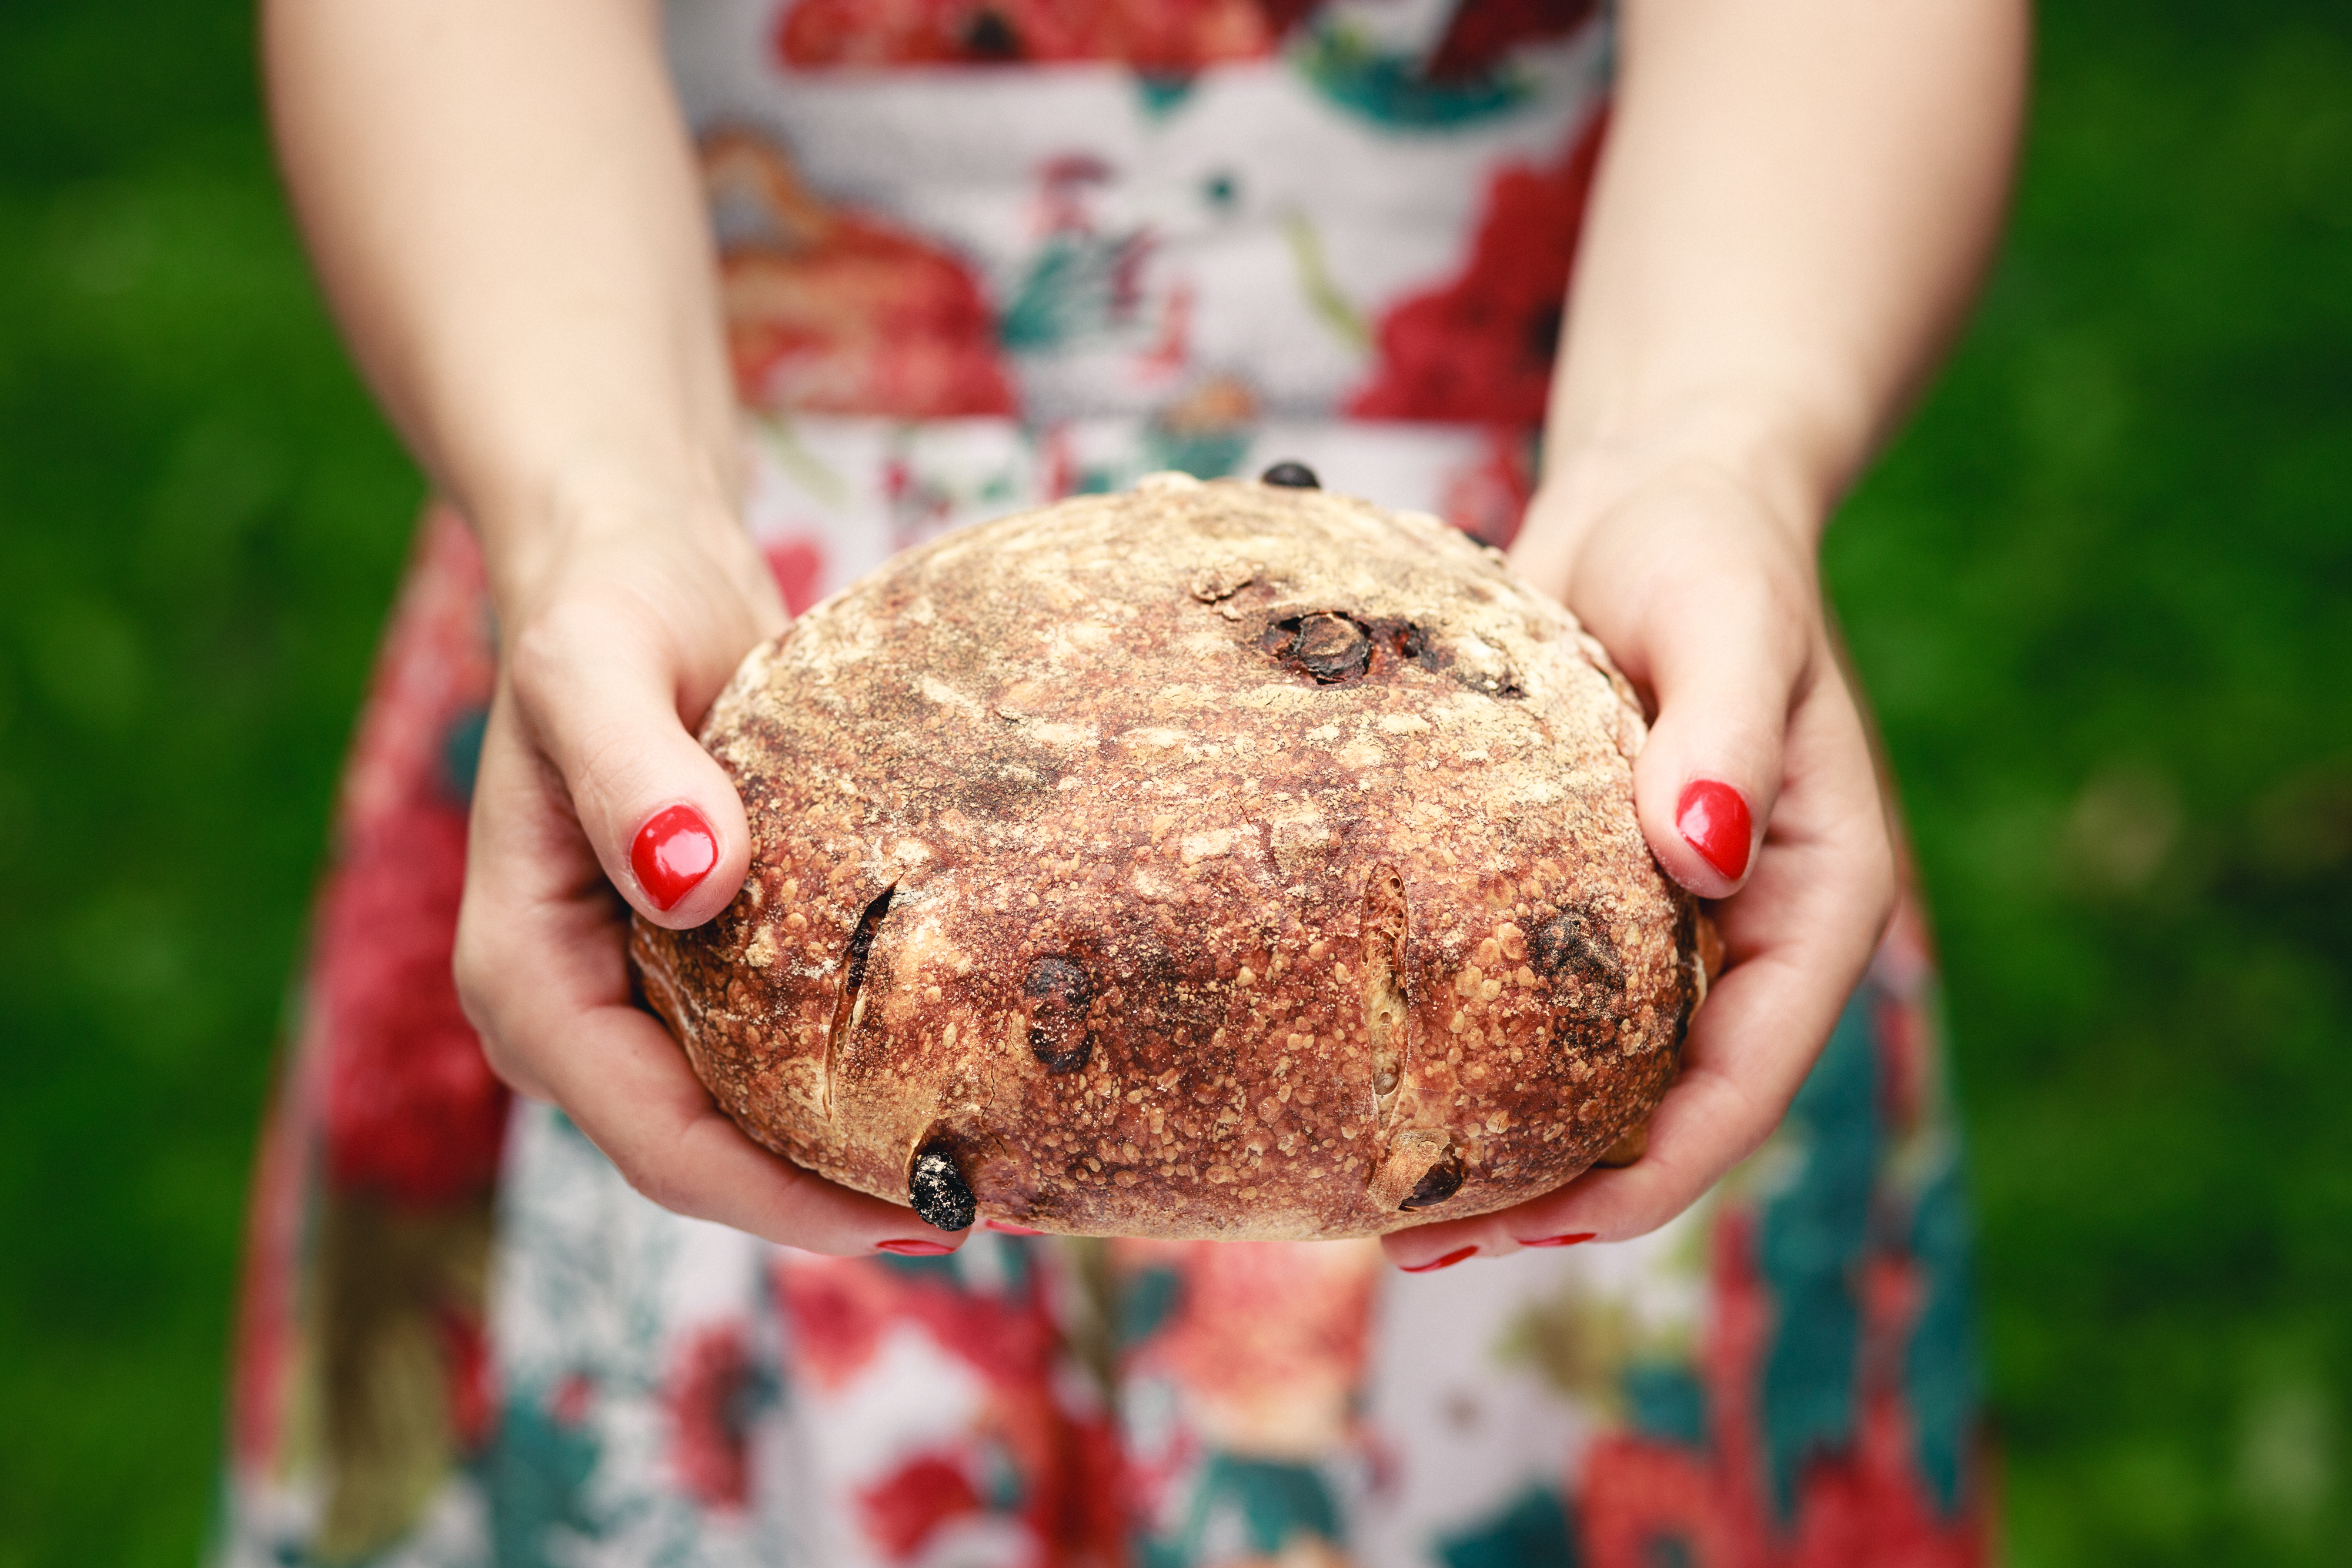 Close up of hands holding rustic bread. Photo with shallow depth of field.